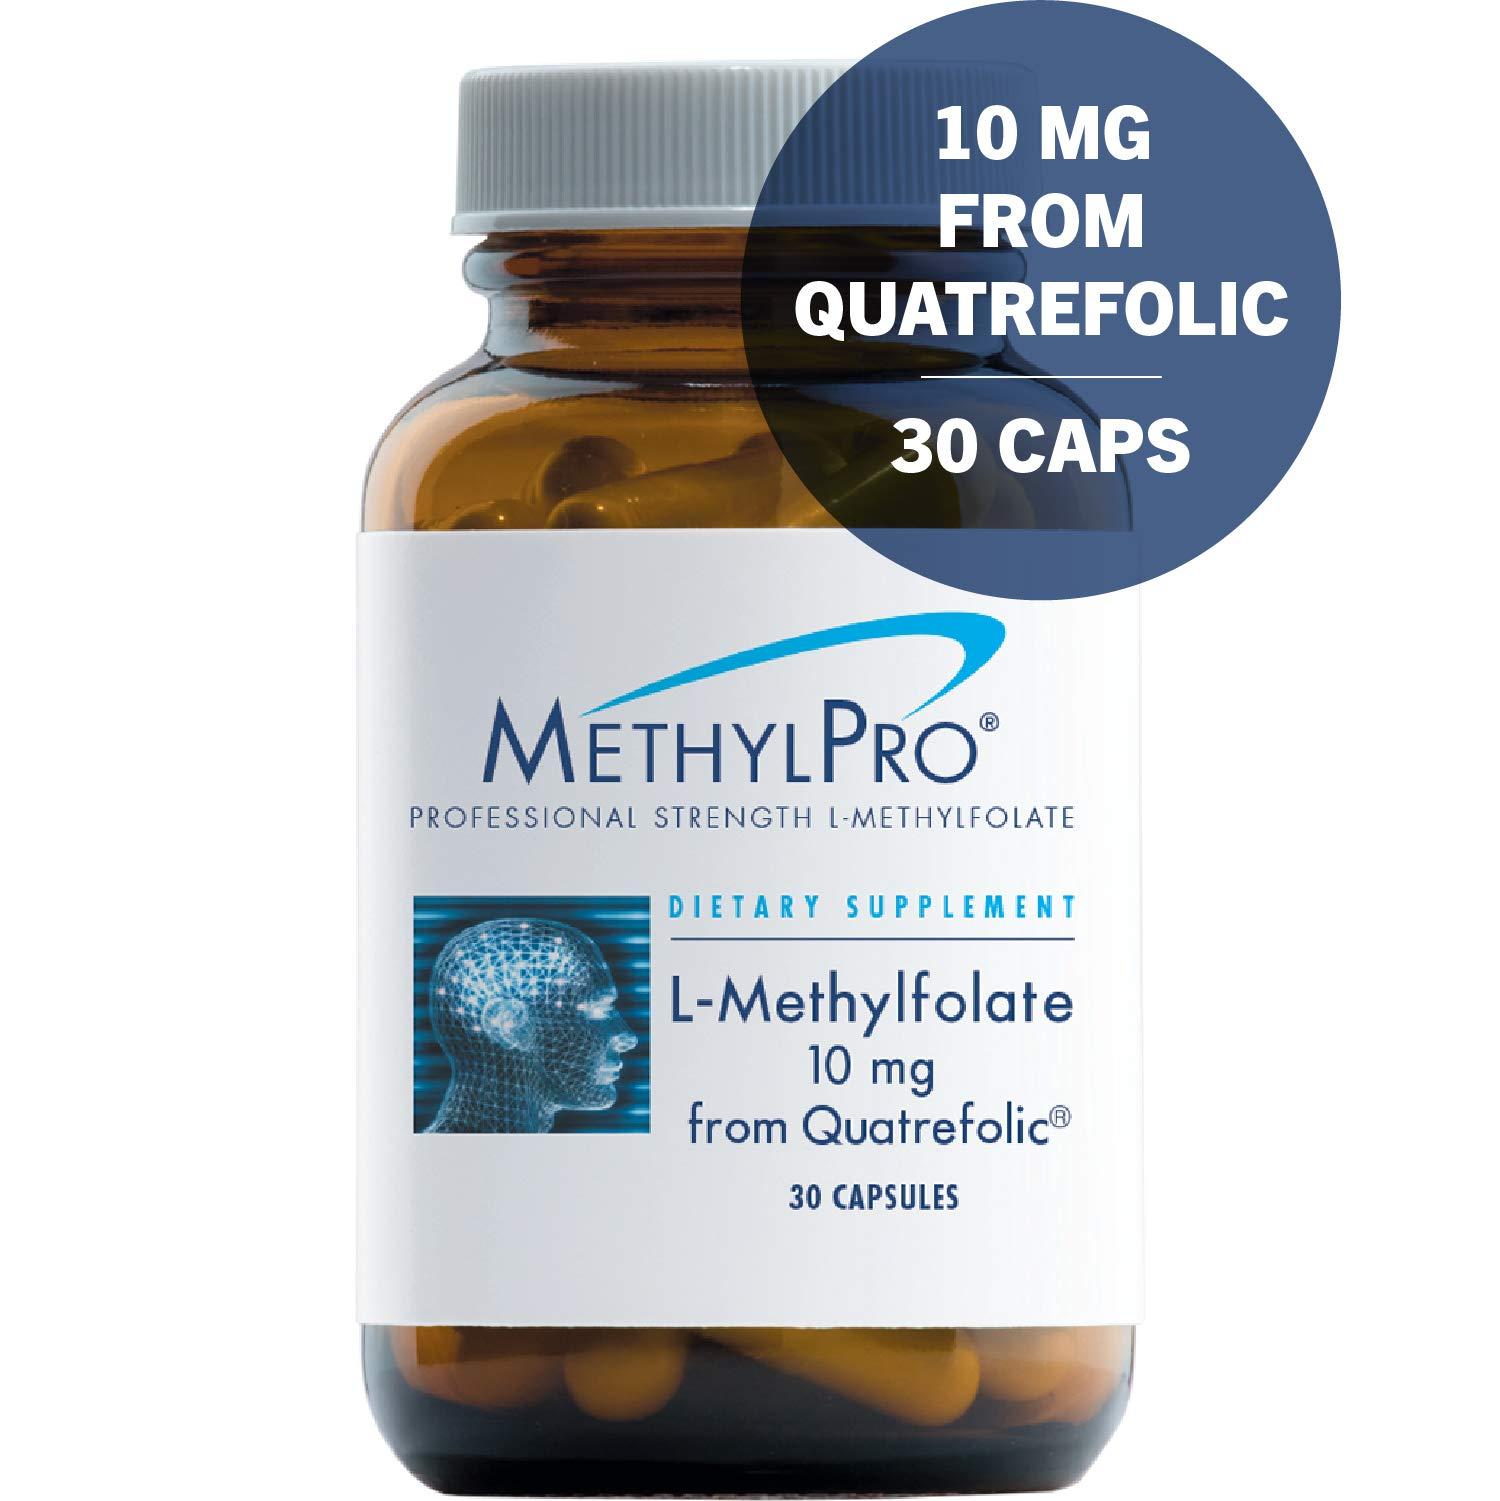 MethylPro 10mg Quatrefolic L-Methylfolate 30 Capsules - No Fillers, Professional Strength 10000mcg Active Folate from Glucosamine Salt, Non-GMO + Gluten-Free Fast-Acting 5-MTHF by MethylPro